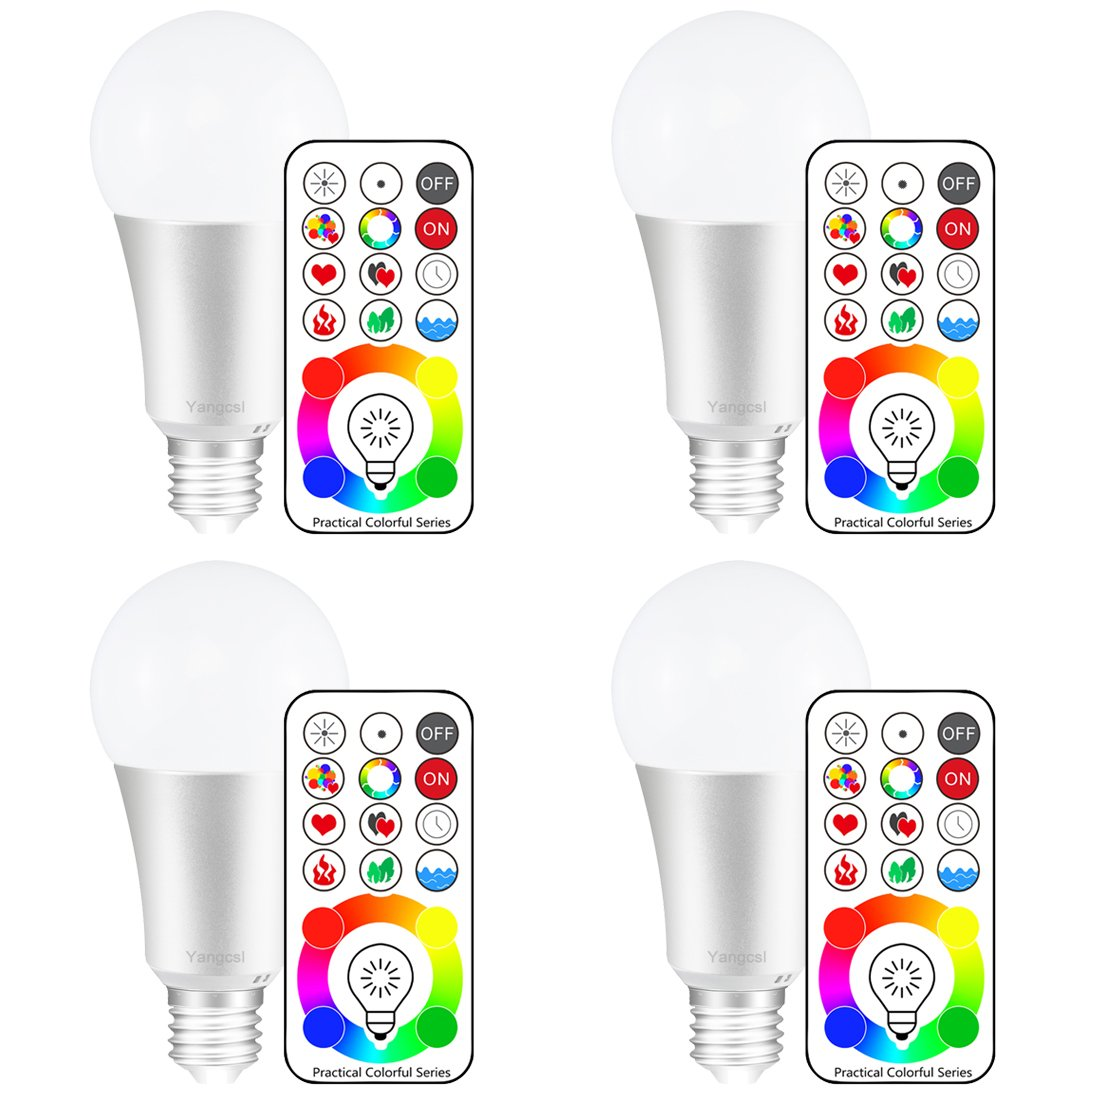 Yangcsl 120 Colors E26 Dimmable Color Changing LED Light Bulbs with Remote Control, Memory & sync, Daylight White & RGB Multi Color, 60 Watt Equivalent (4 Pack) by Yangcsl